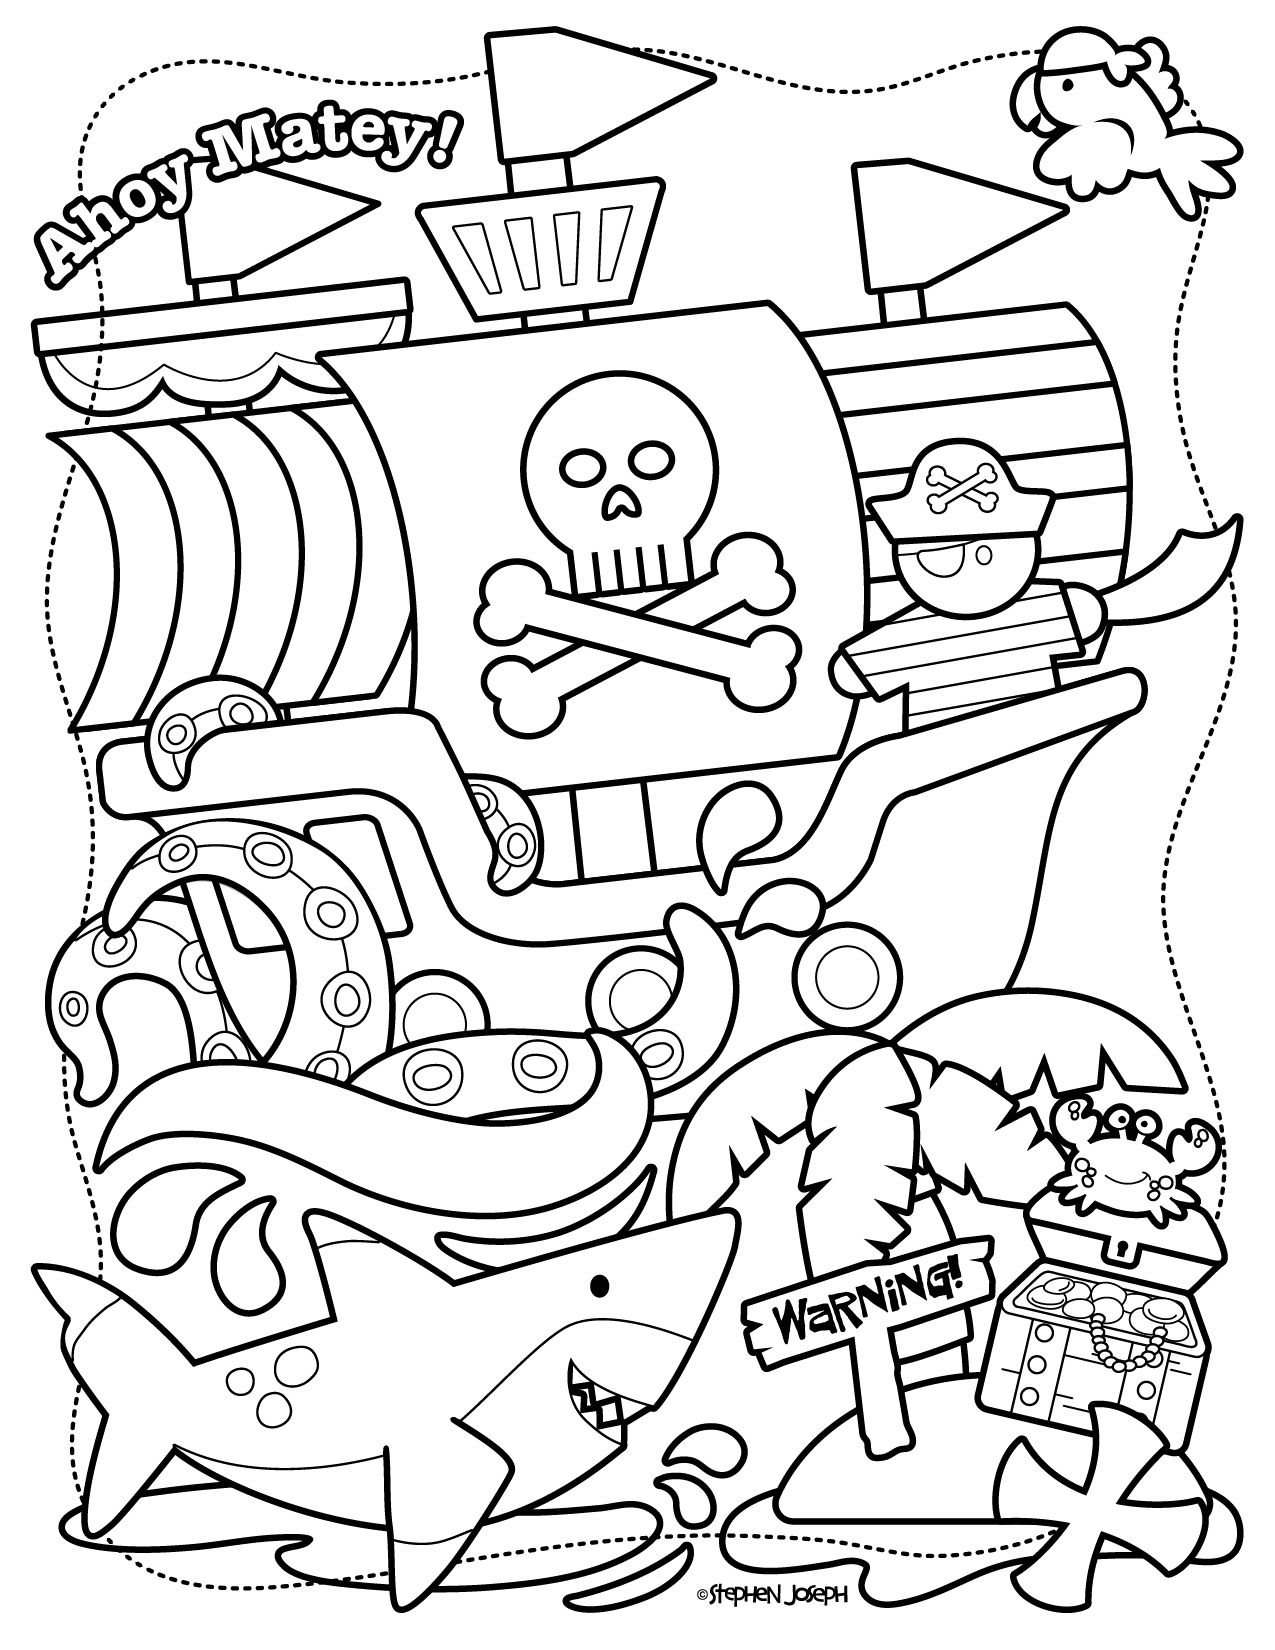 Pirate Coloring Page Printable Free By Stephen Joseph Gifts